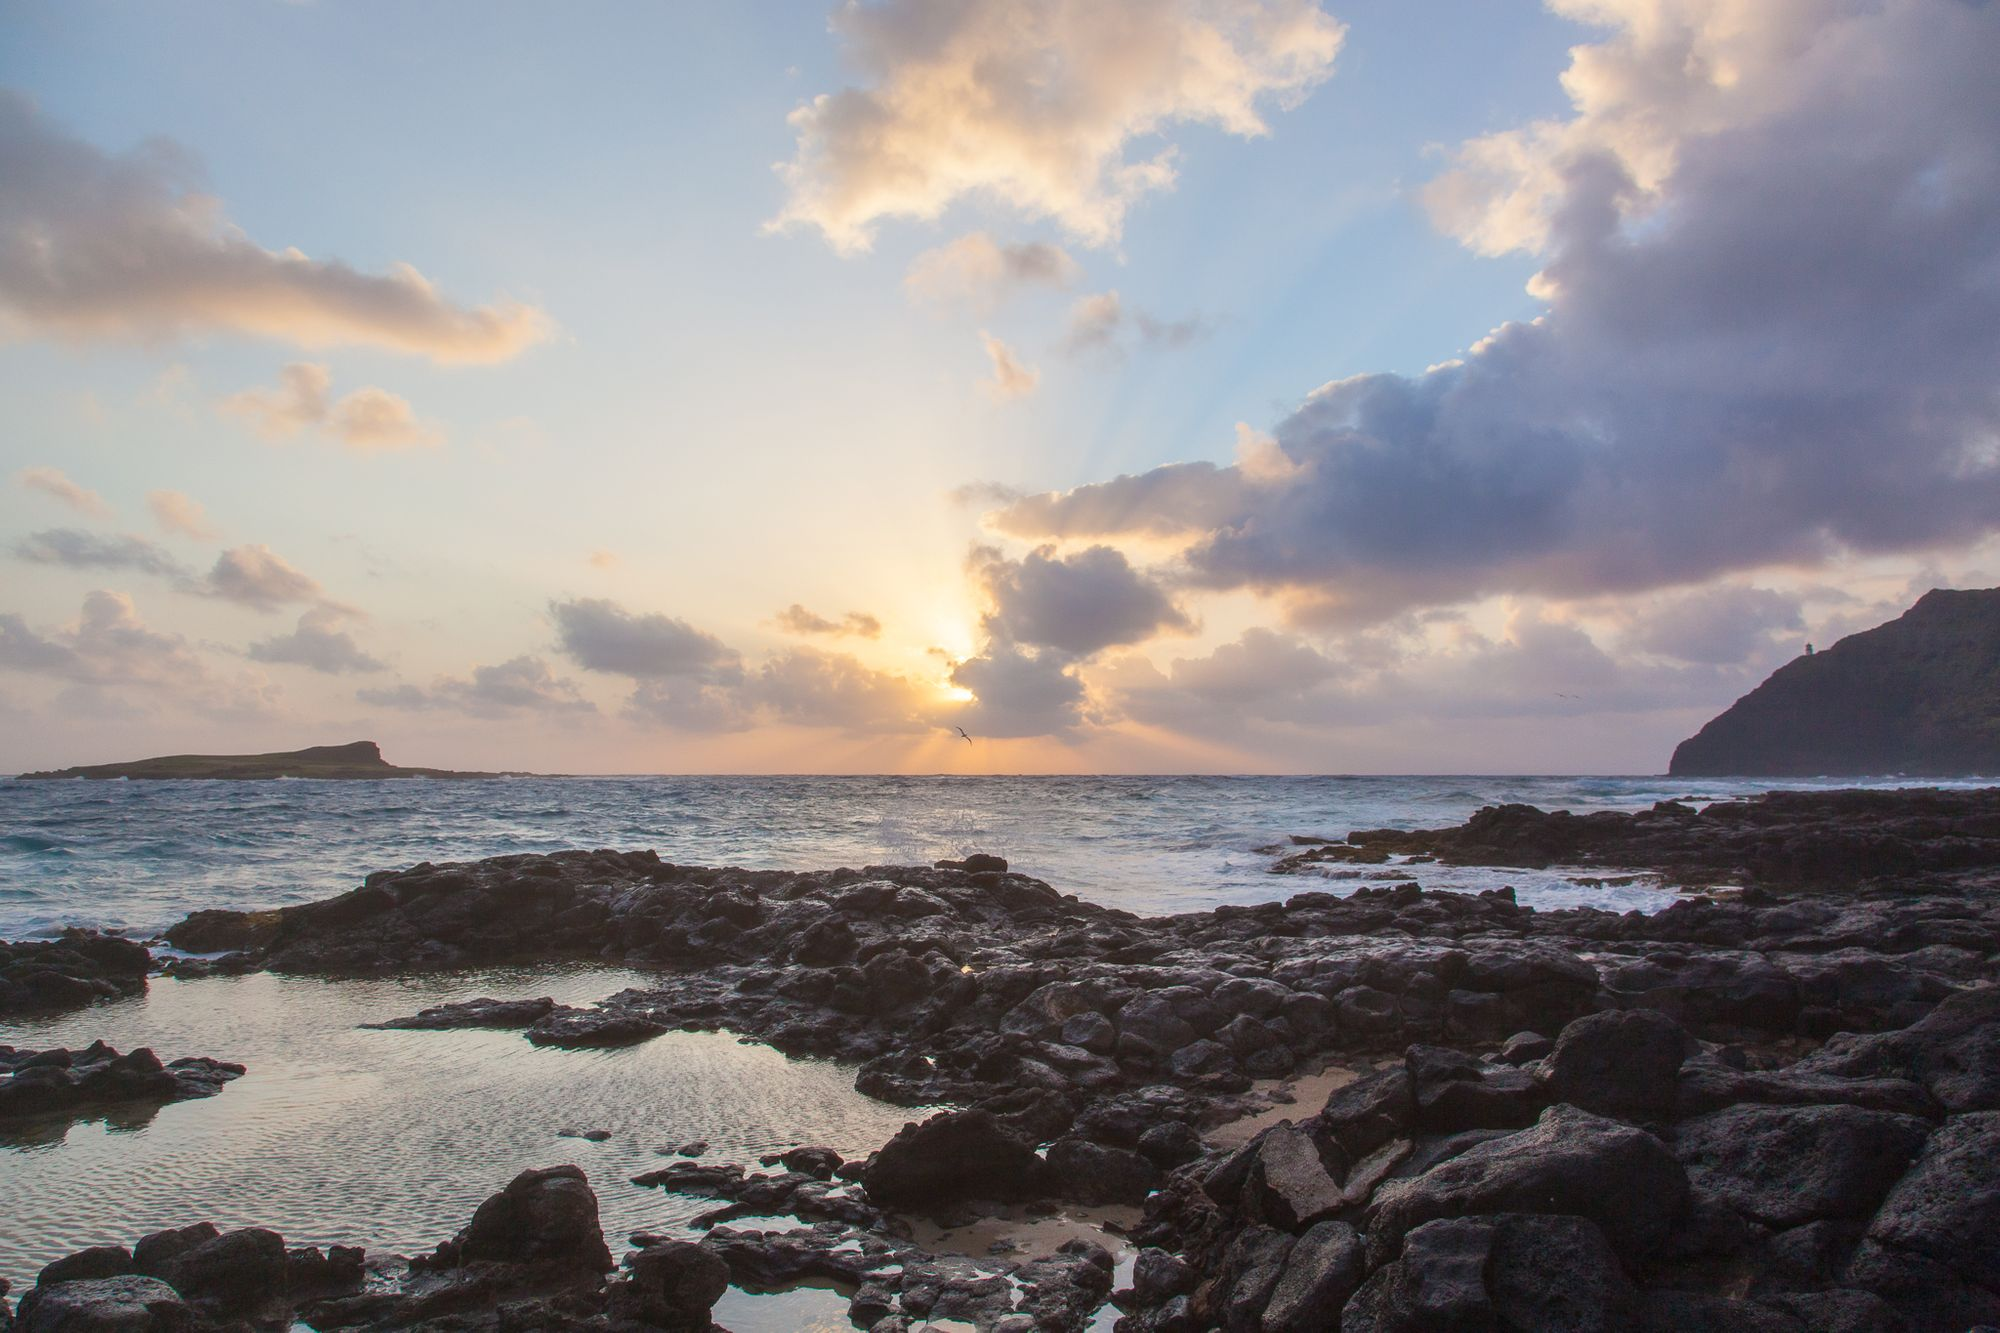 Sunrise at Makapu'u Beach Park